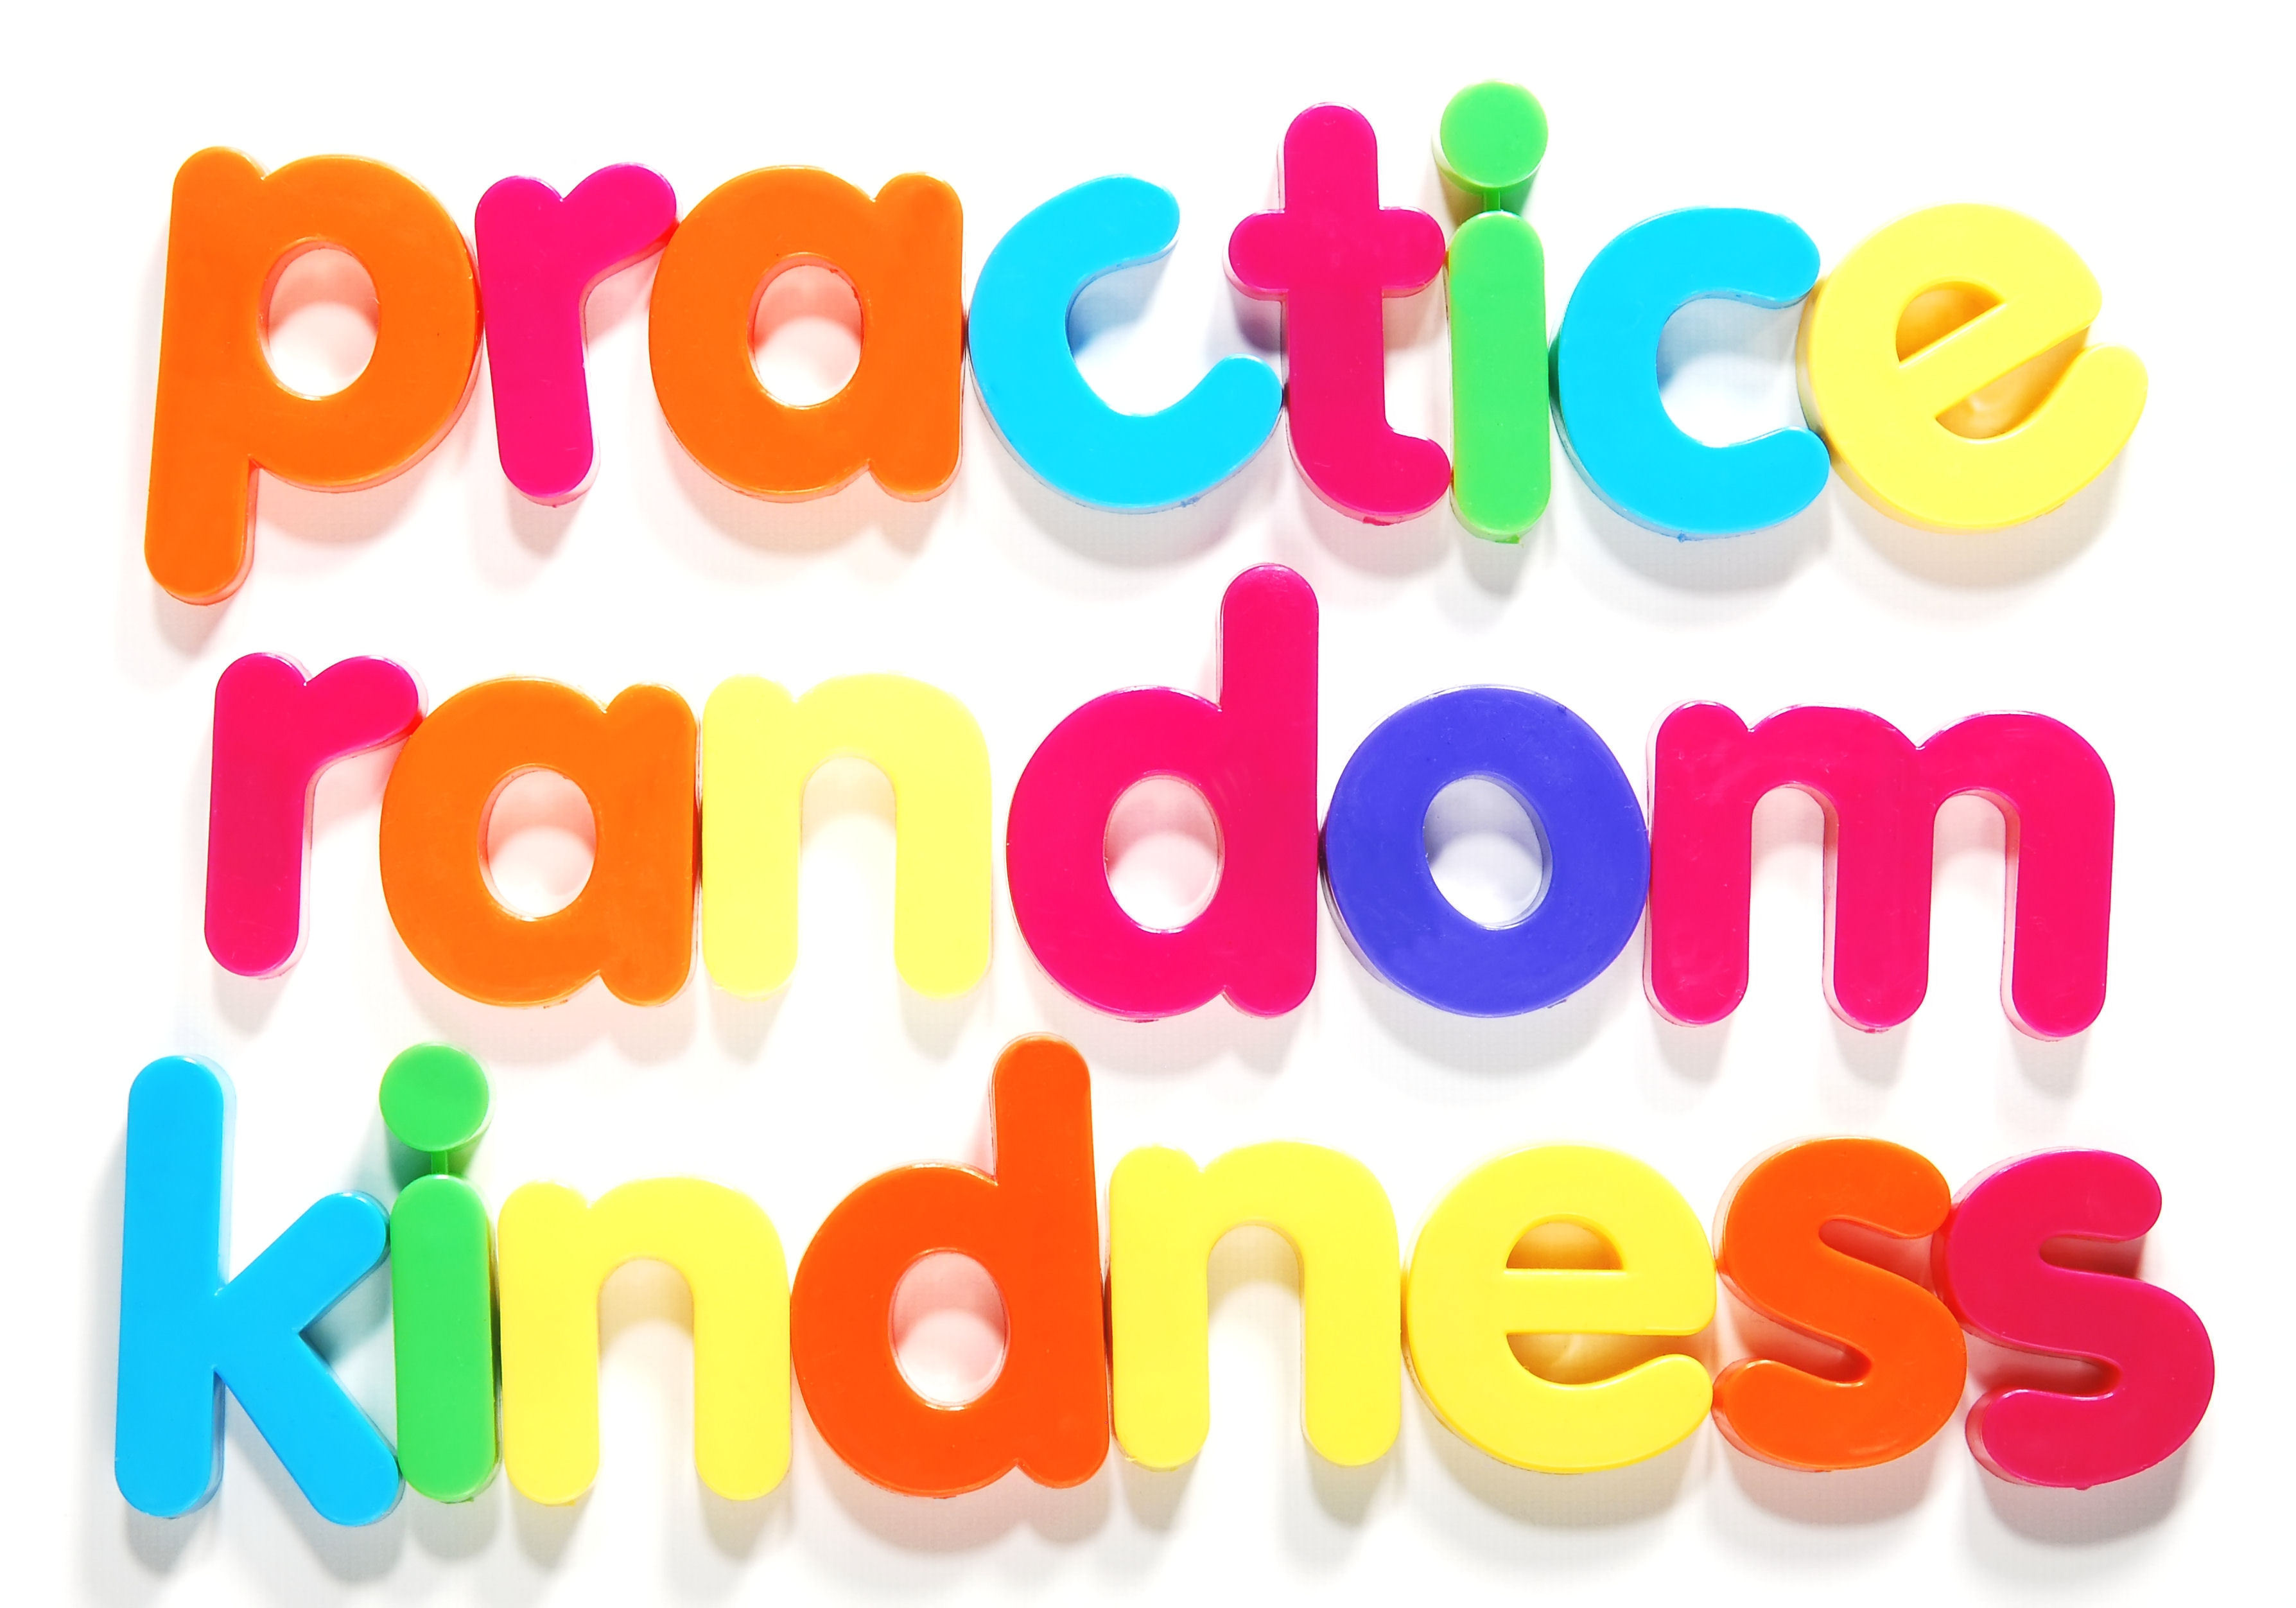 Showing kindness clipart image royalty free Showing Kindness Clipart 97821 | GRAPHICWE image royalty free